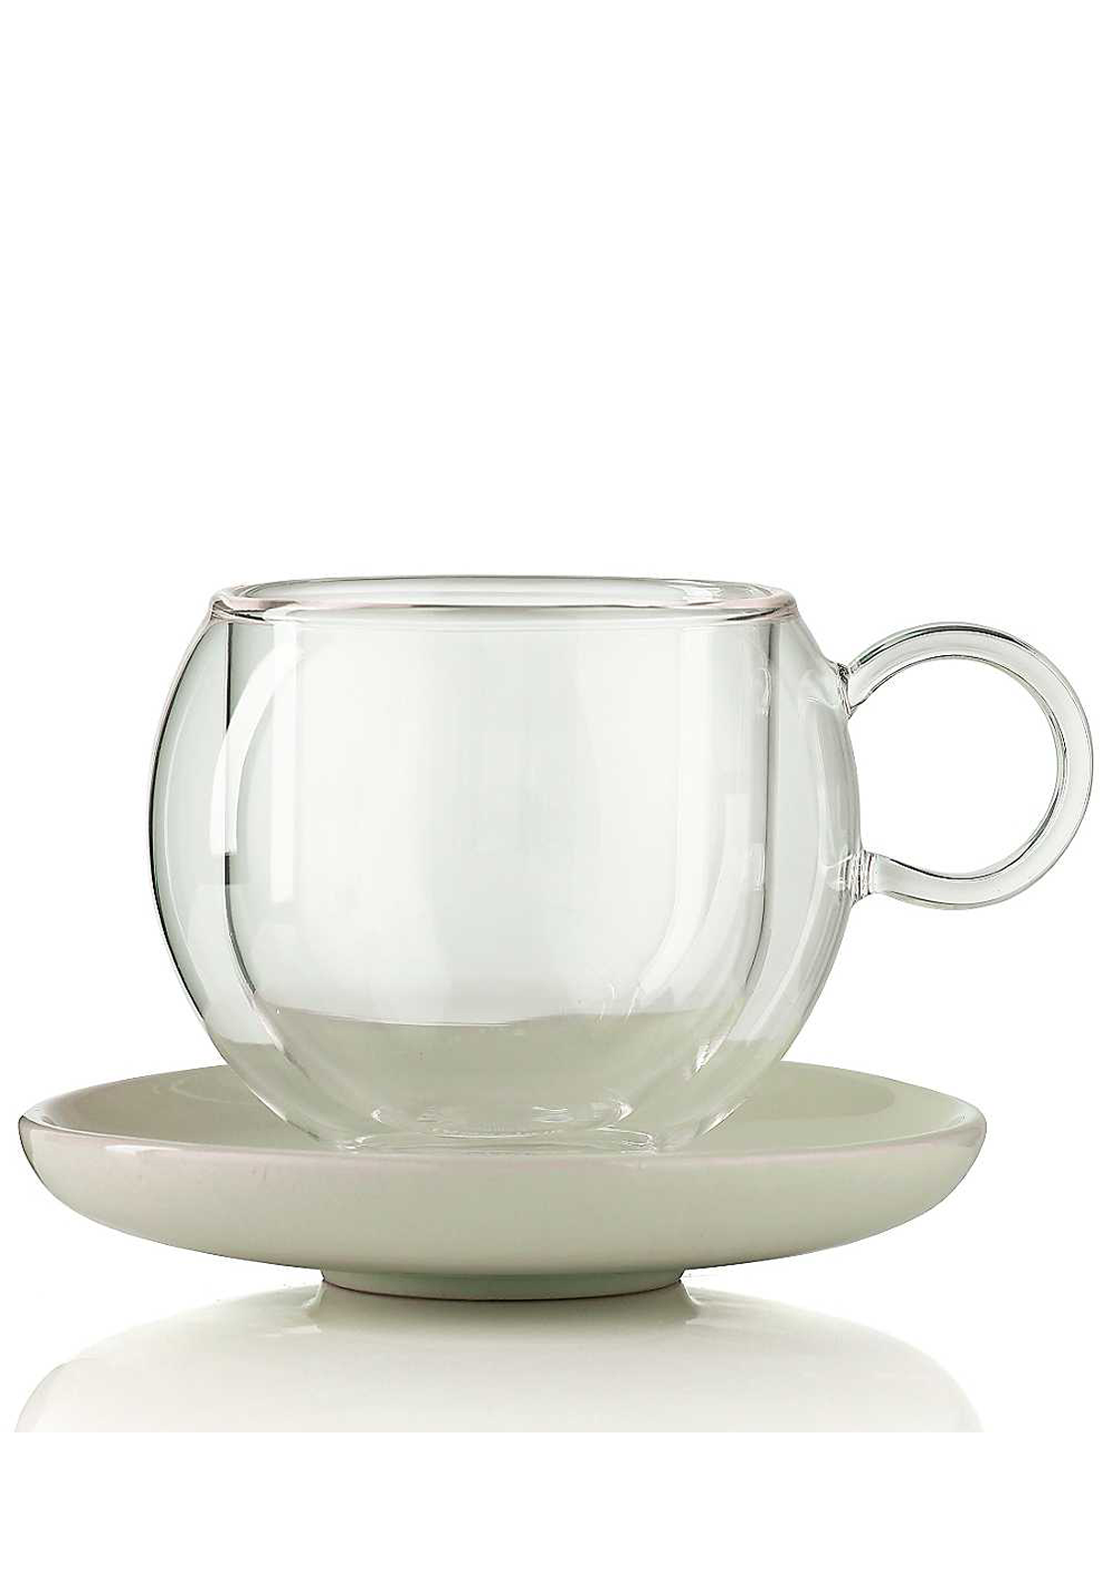 La Cafetiere Large Bola Cup & Saucer